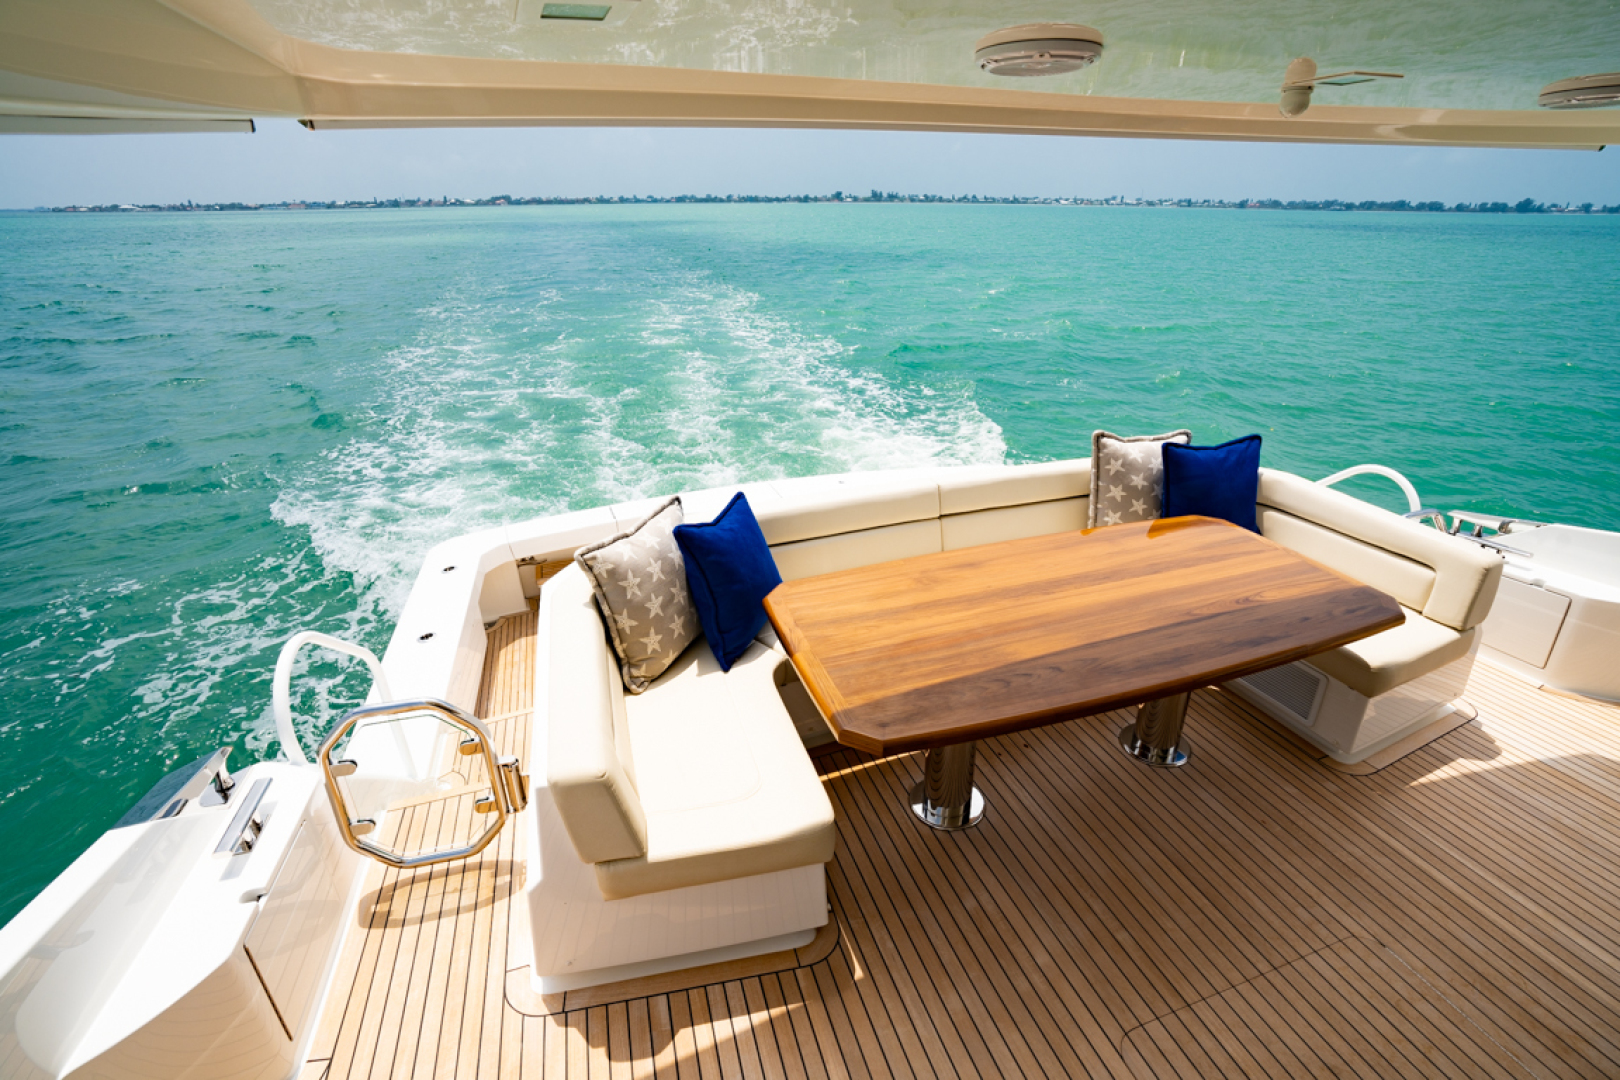 Viking-82 Cockpit MY 2019-Make It Happen Sanibel -Florida-United States-Viking 82CPMY Make It Happen Aft Deck Table-1378555 | Thumbnail